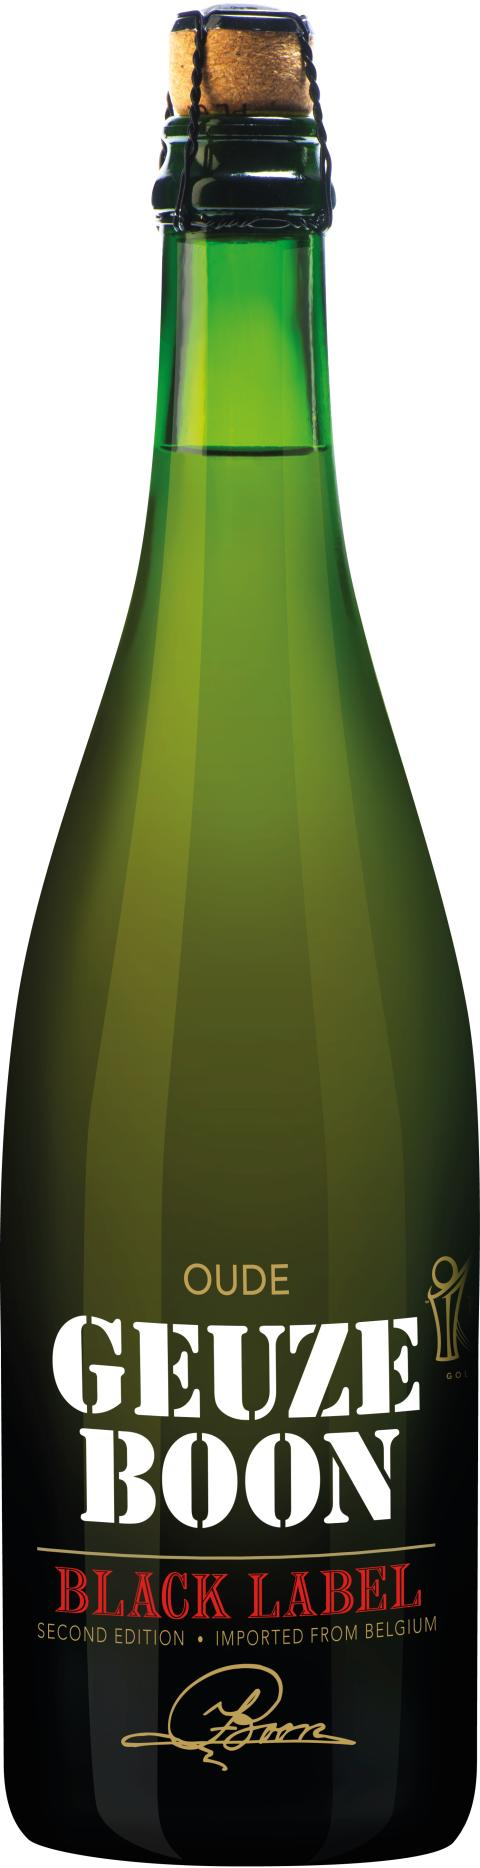 Geuze Black Label Second Edition - Bottle